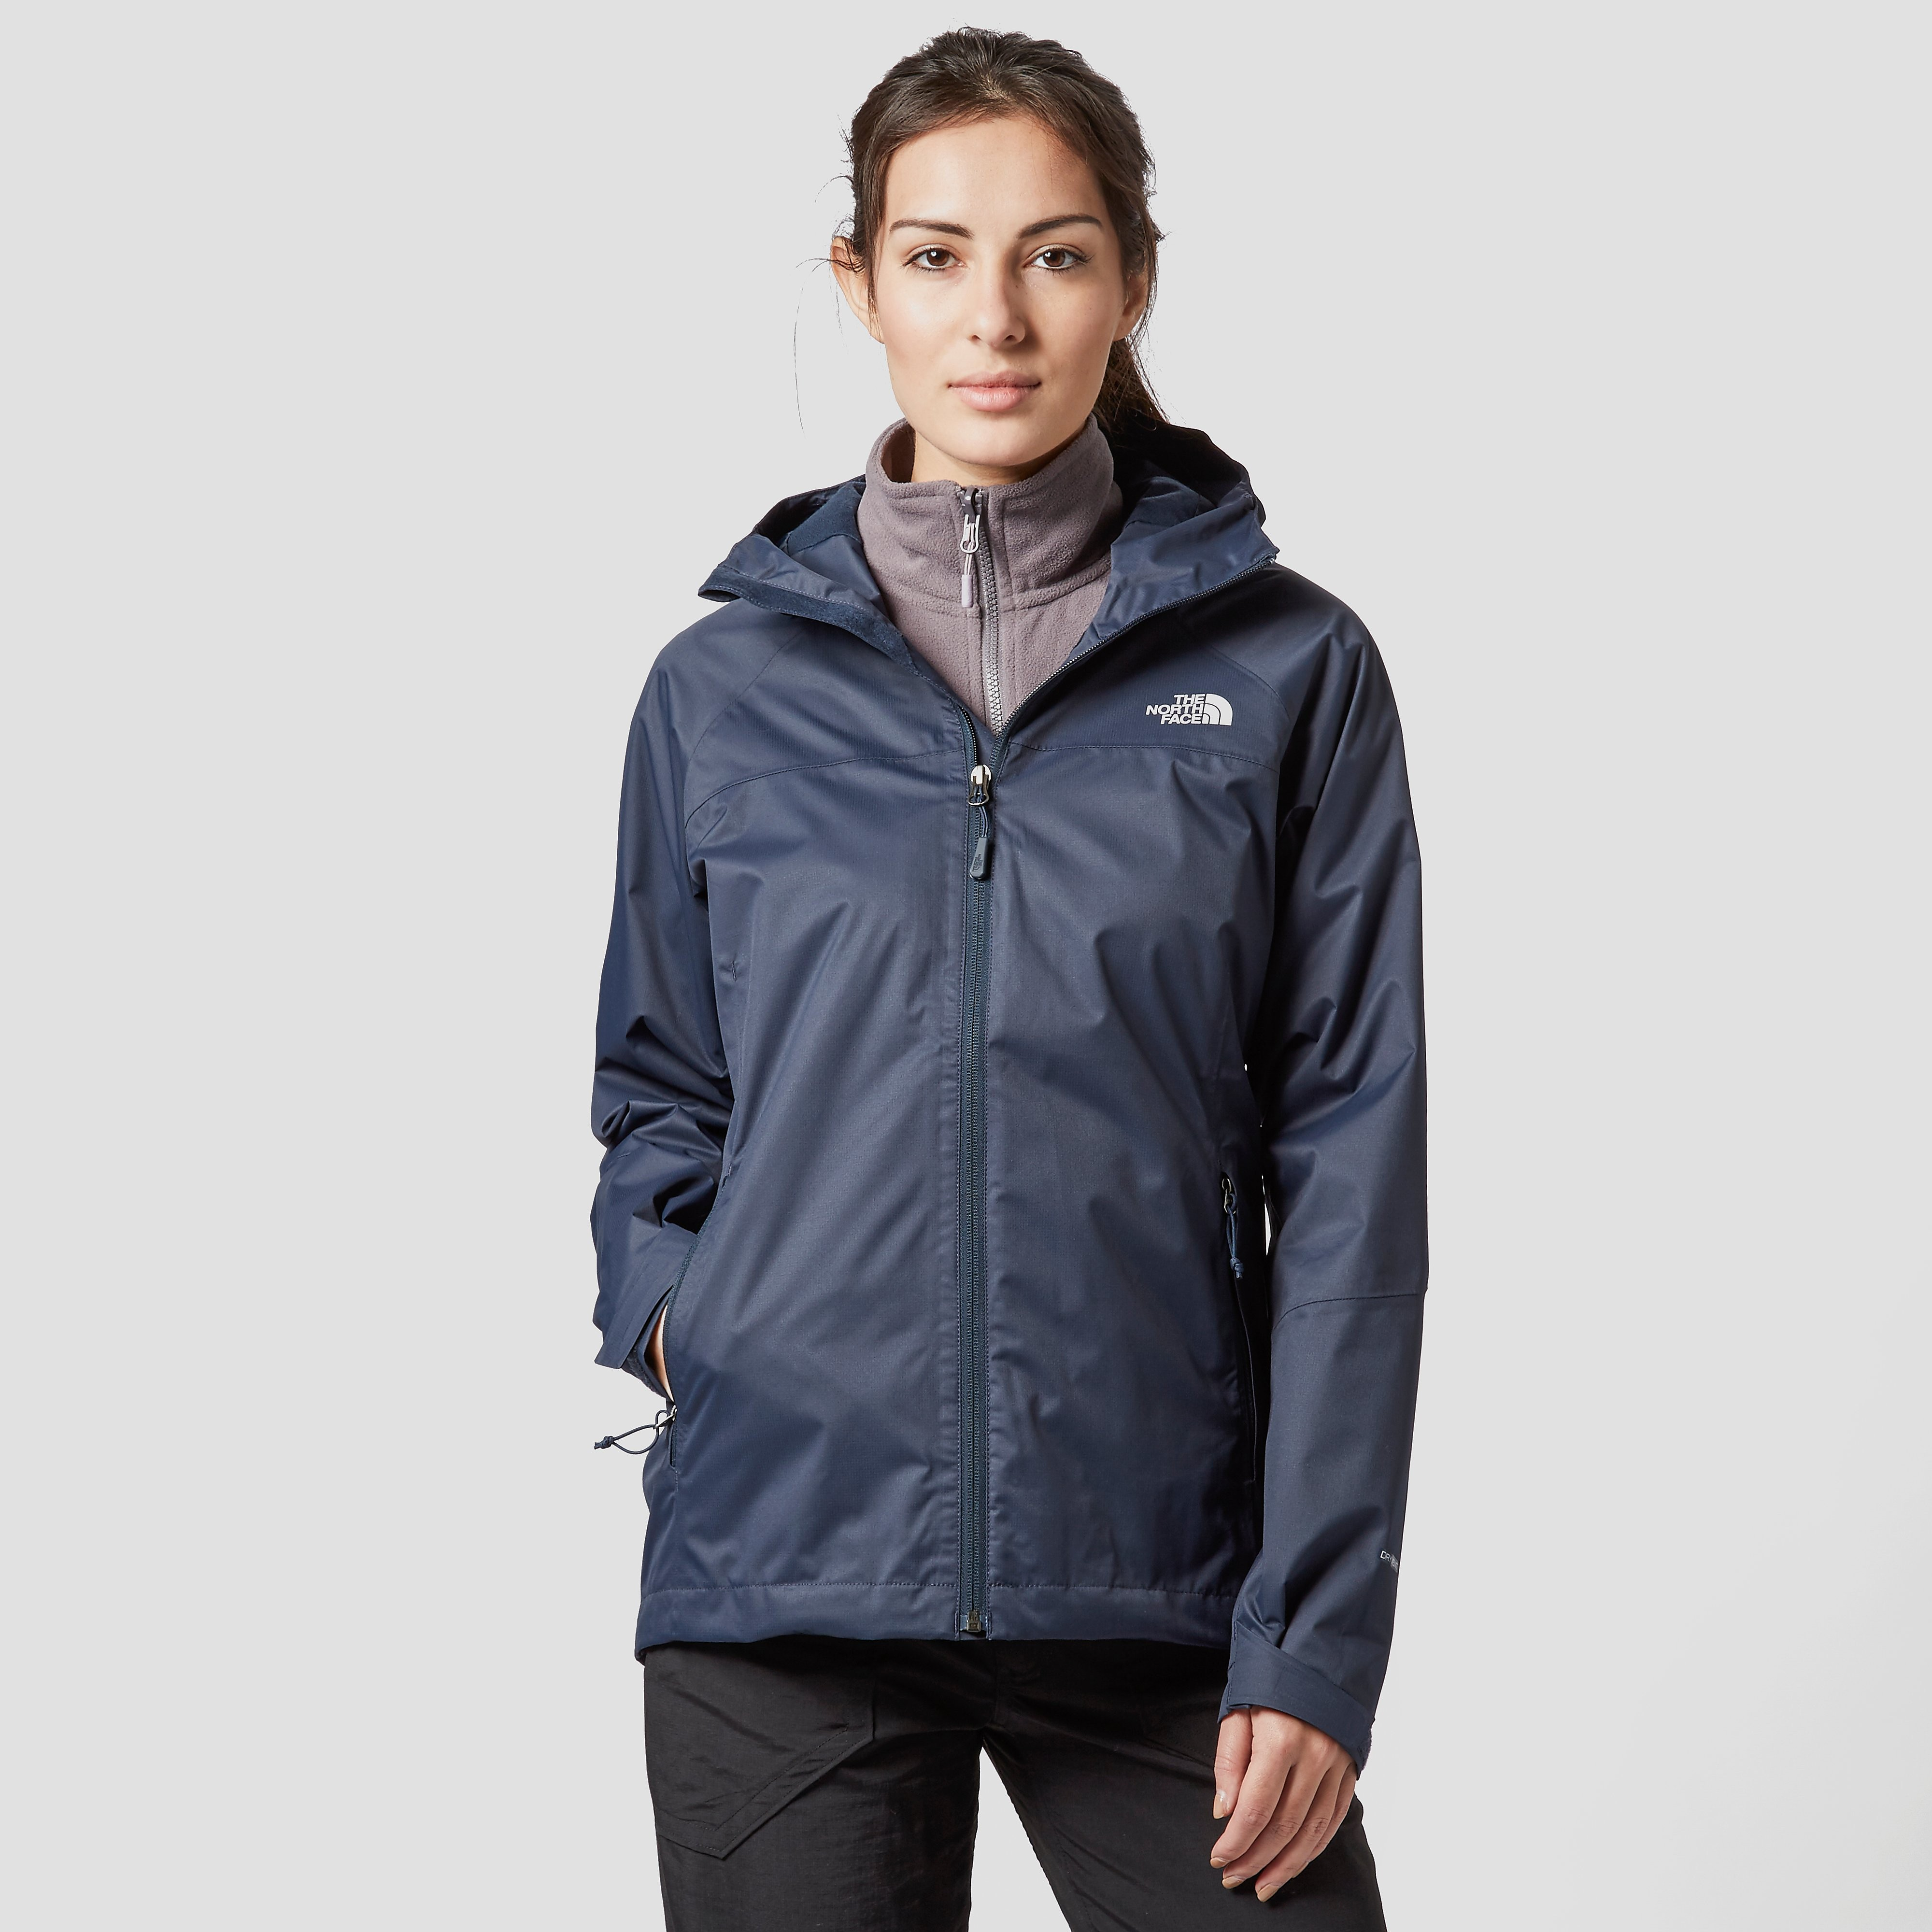 The North Face Sequence Women's Waterproof Jacket